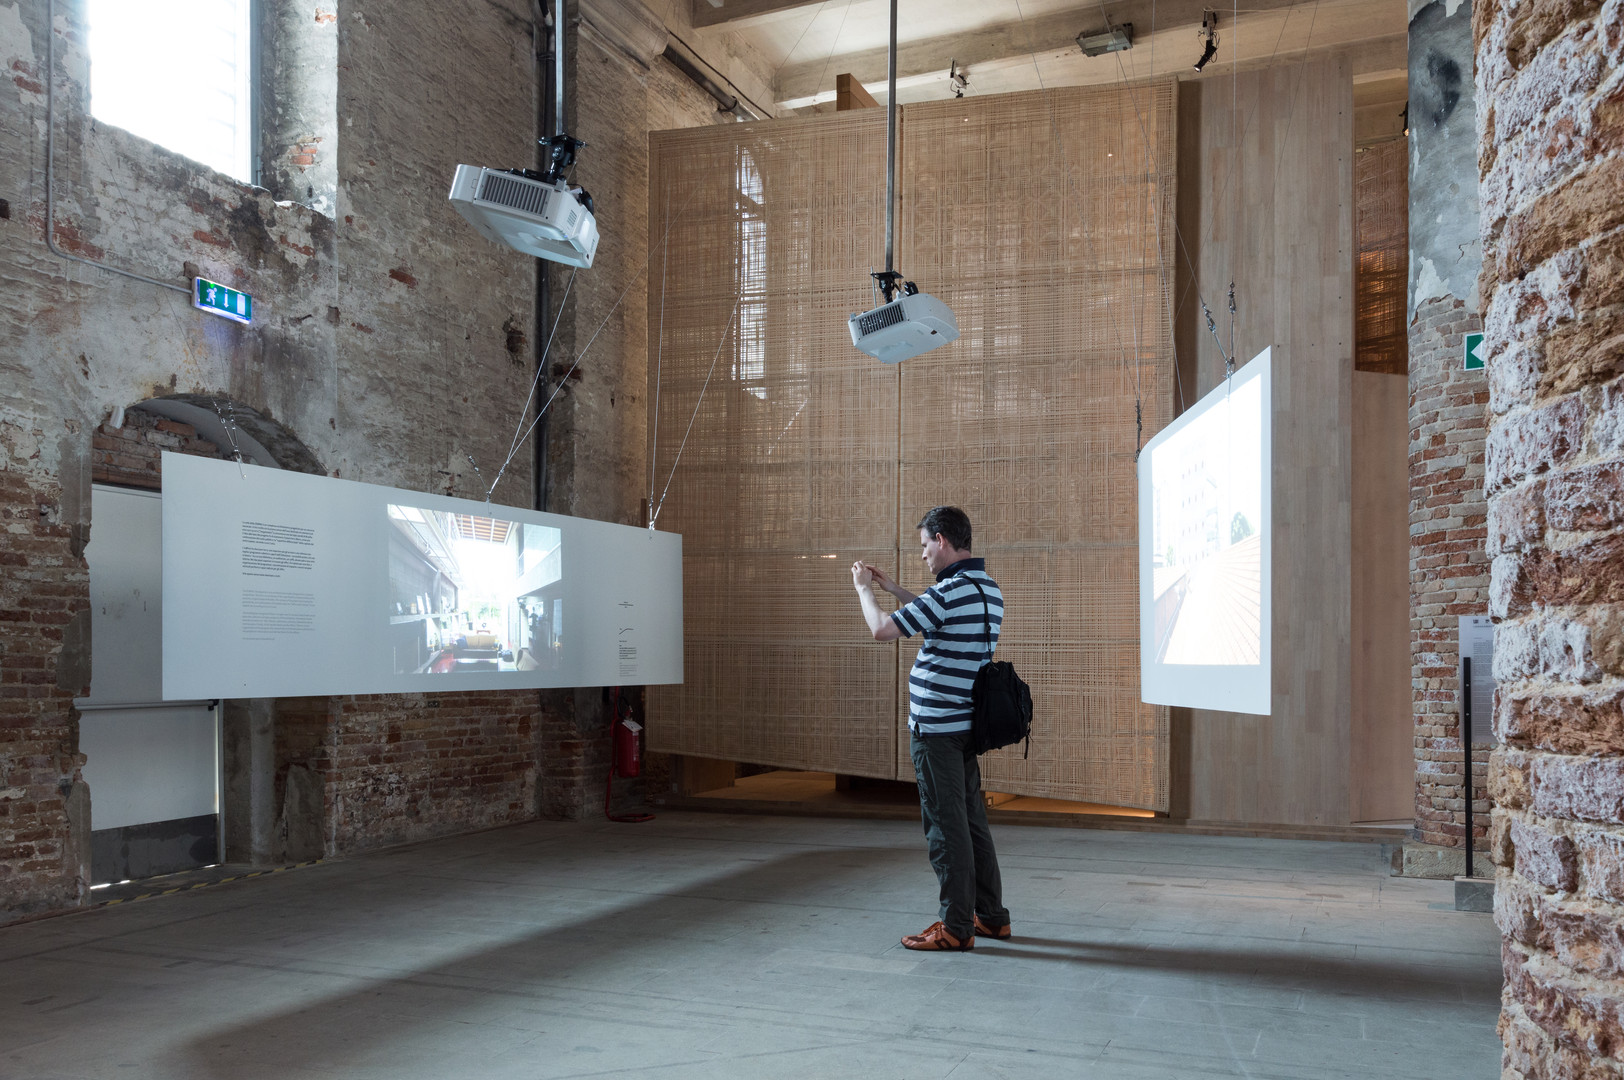 Man in between two hanging screens of Grupo SP pavilion at the Venice Biennale 2018